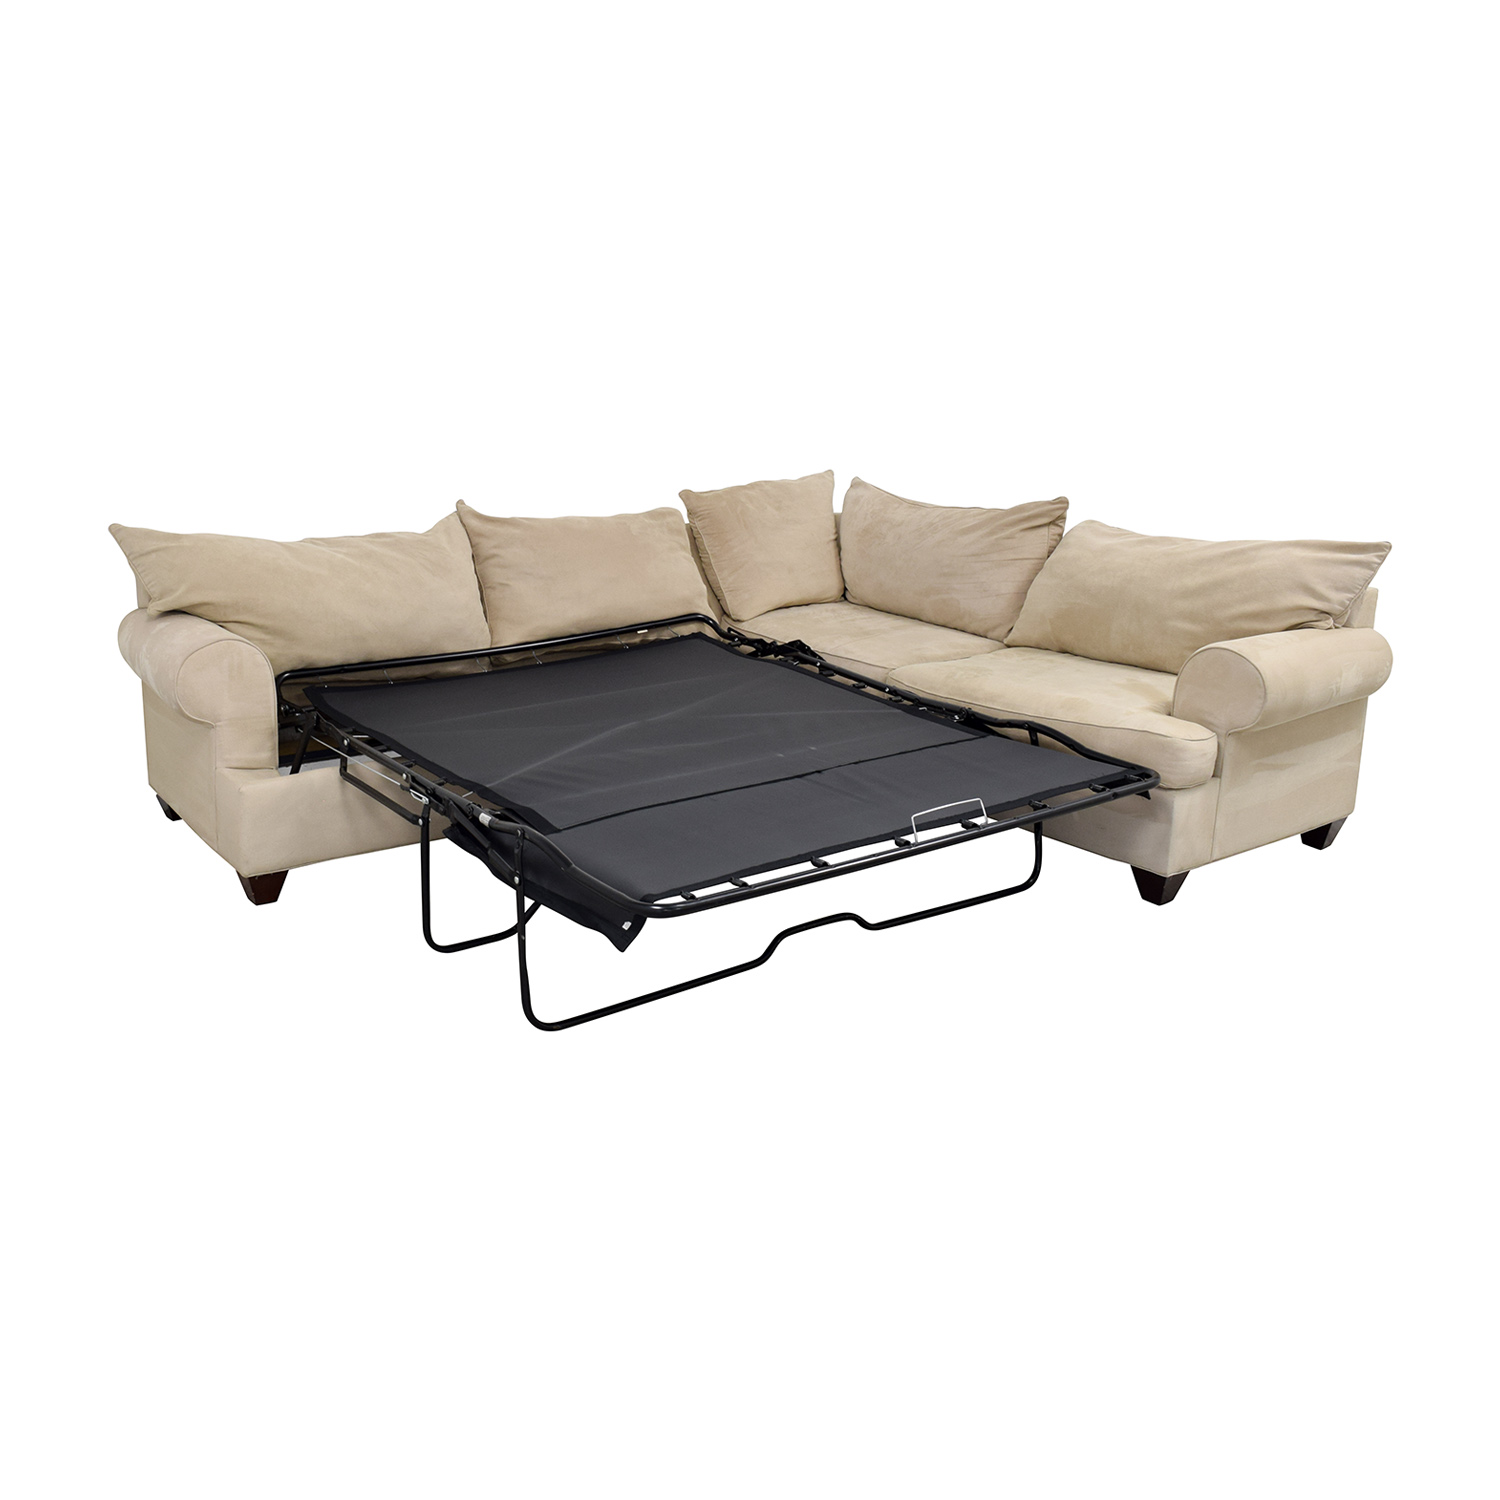 buy Raymour & Flanigan Sectional Sleeper Sofa Raymour & Flanigan